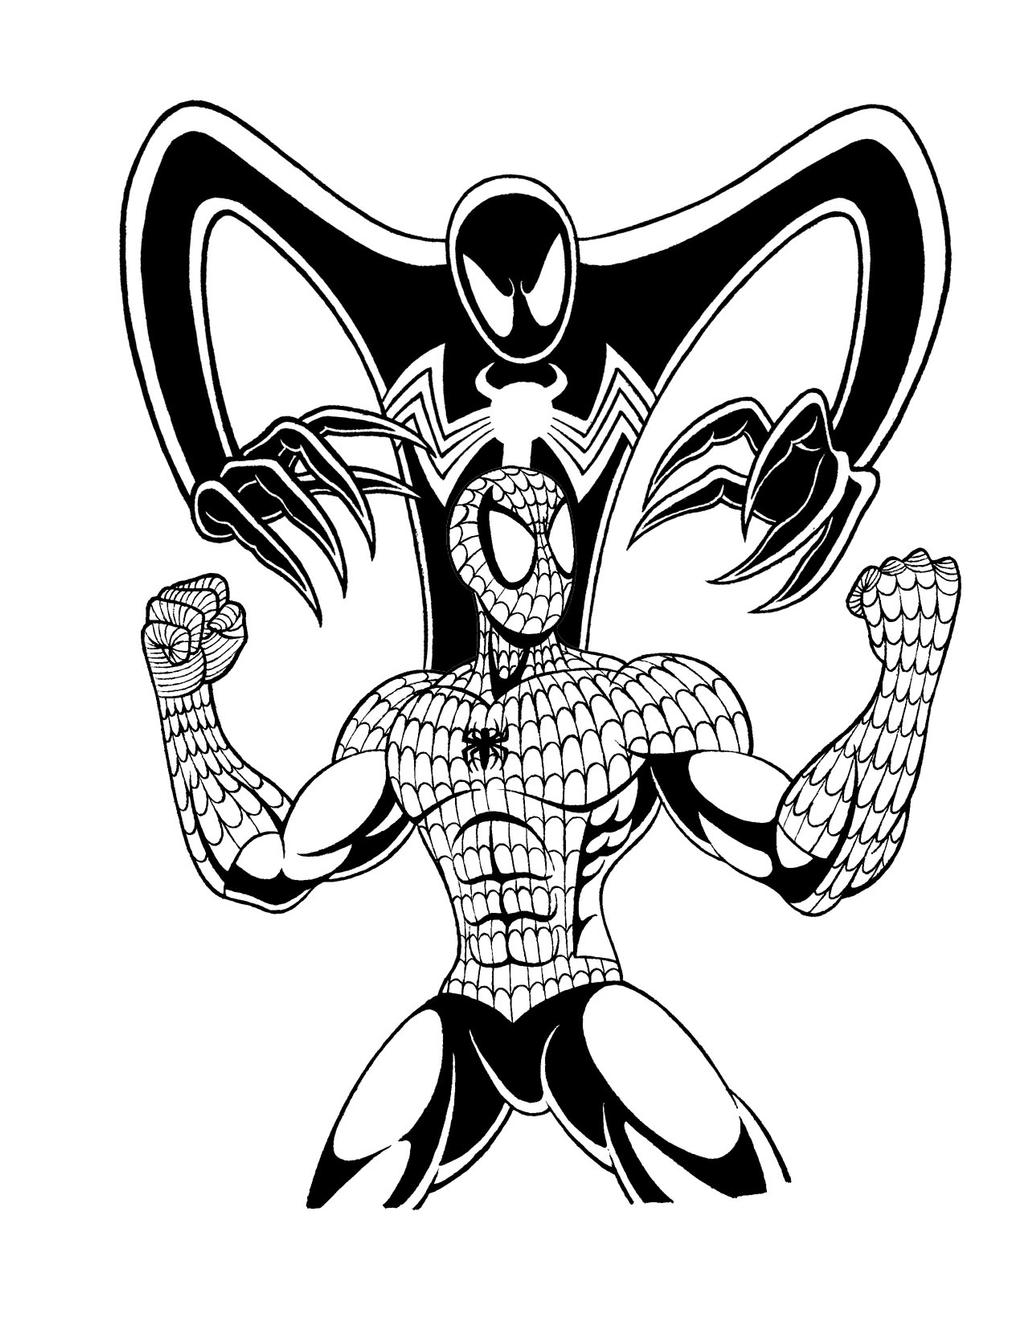 spider man and symbiote tattoo design by mystic forces on deviantart. Black Bedroom Furniture Sets. Home Design Ideas